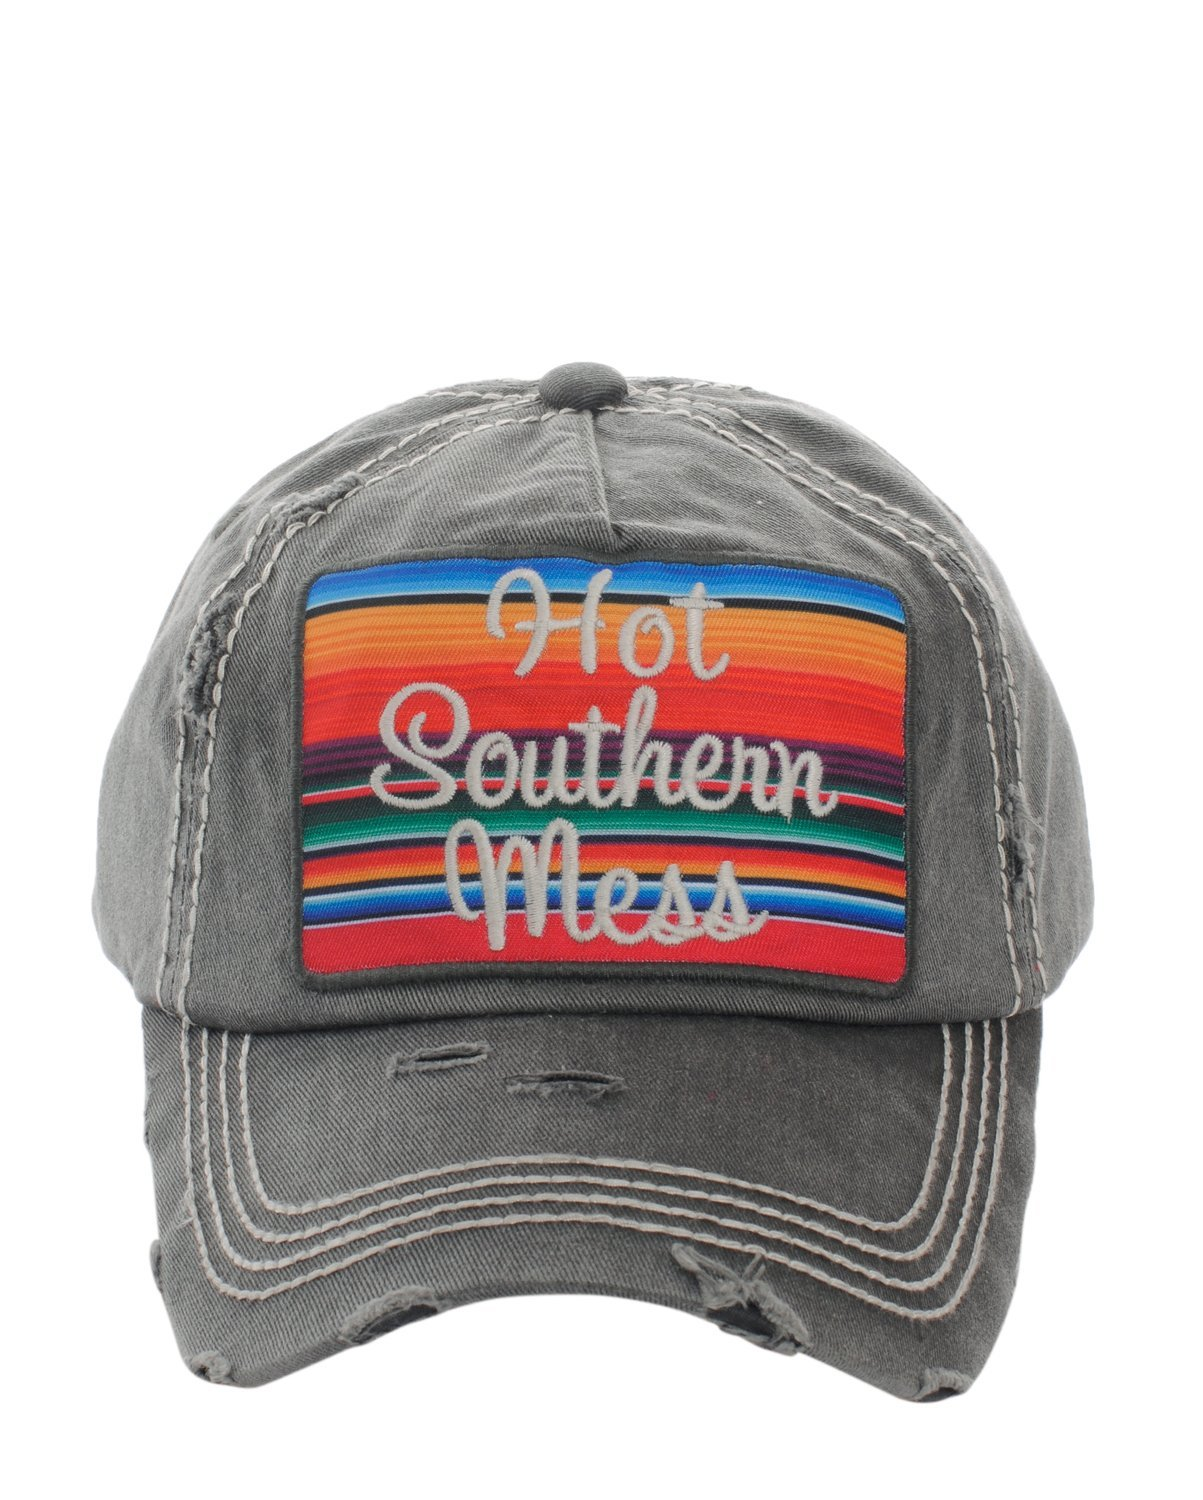 Distressed Country Vintage Style Hot Southern Mess Baseball Cap Hat (Black)